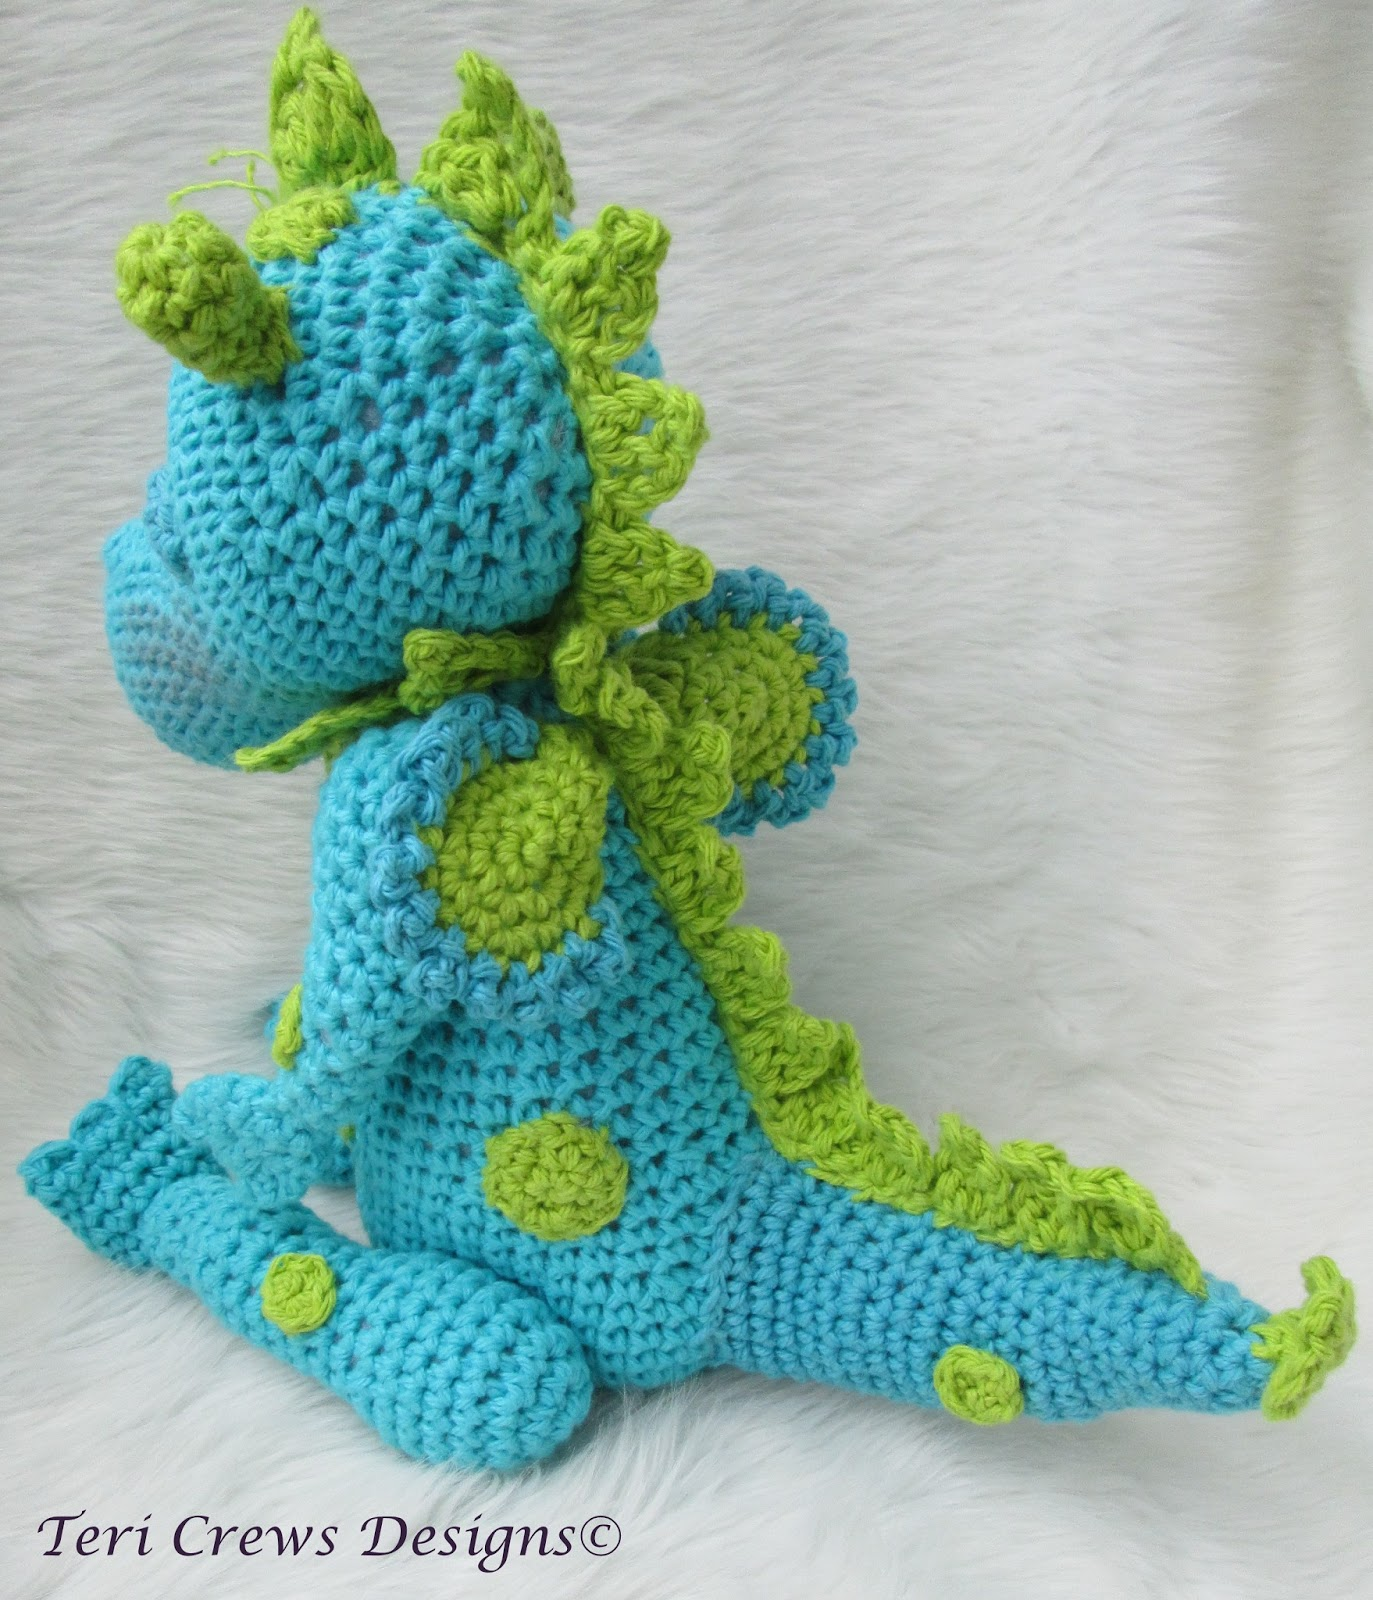 Crochet Patterns Dragon : Teris Blog: New Cute Dragon Crochet Pattern